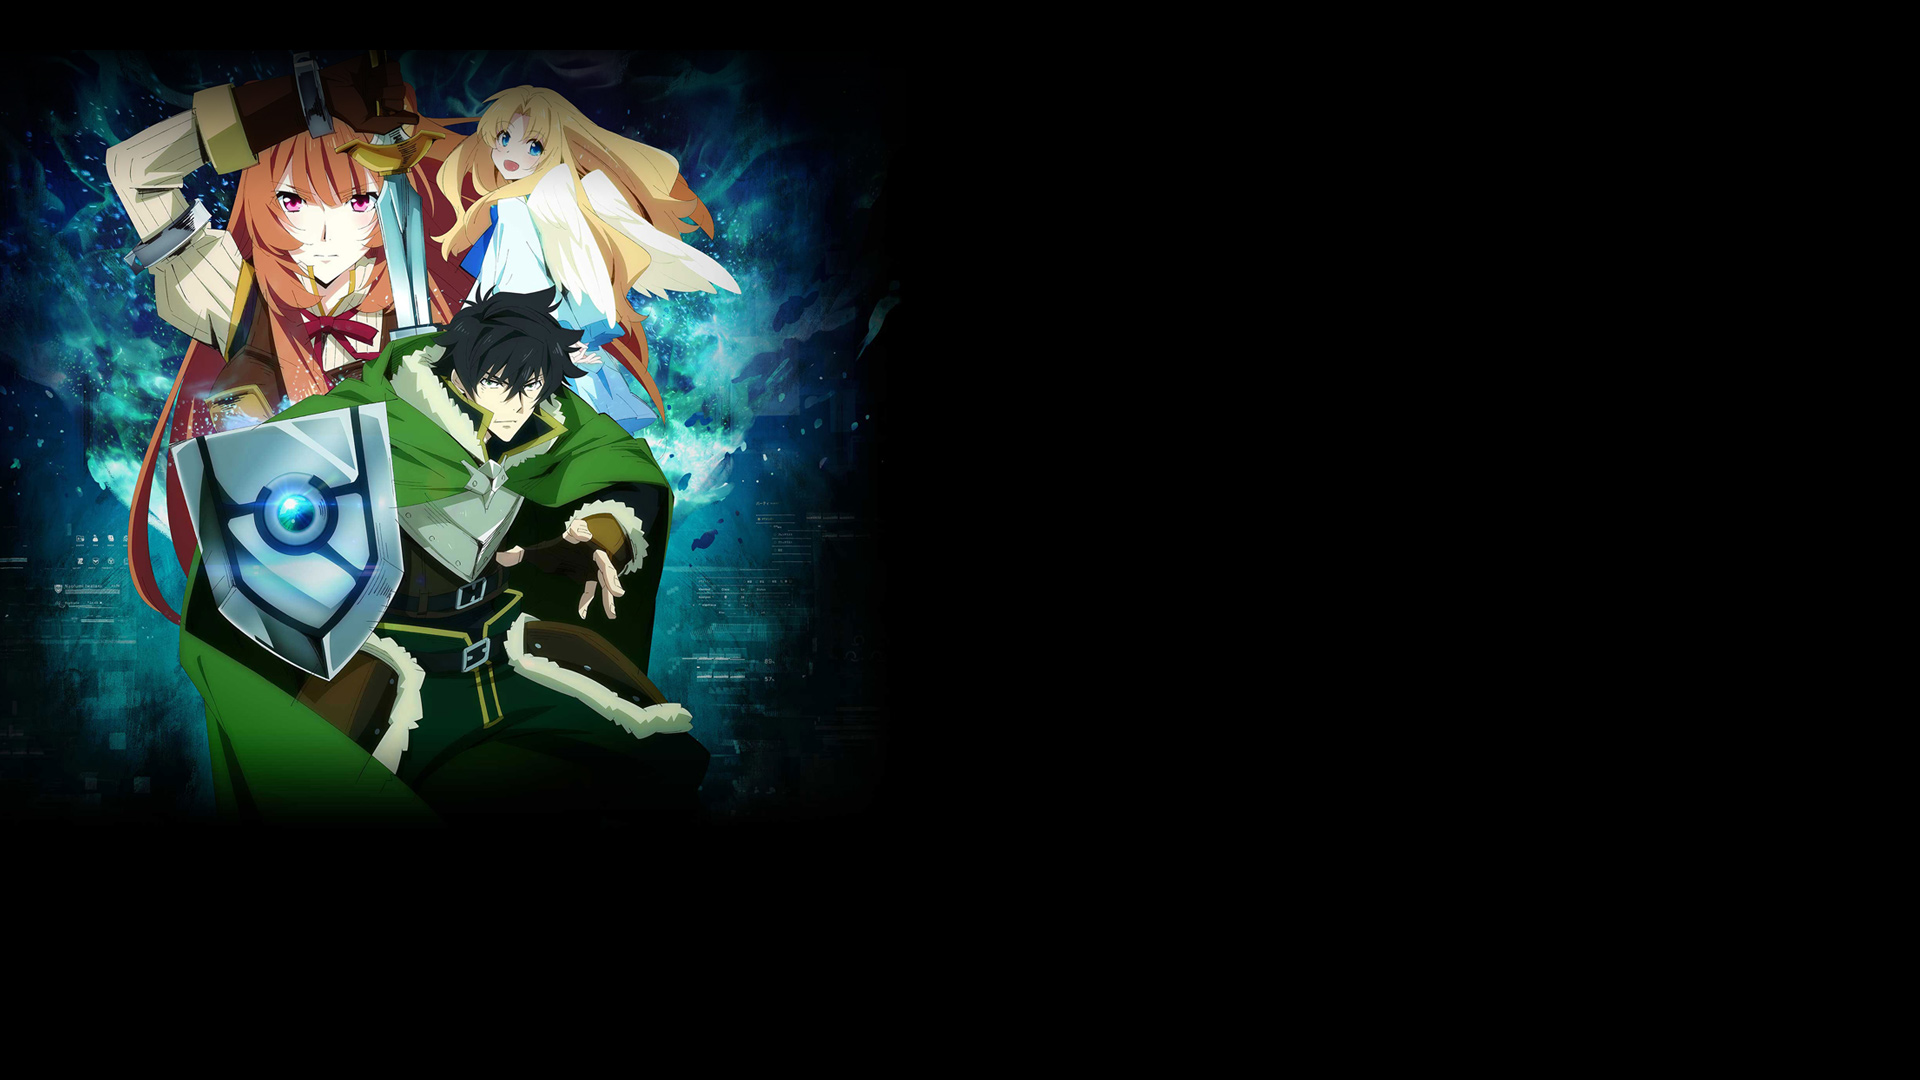 The Best The Rising Of The Shield Hero Wallpaper 1080P PNG